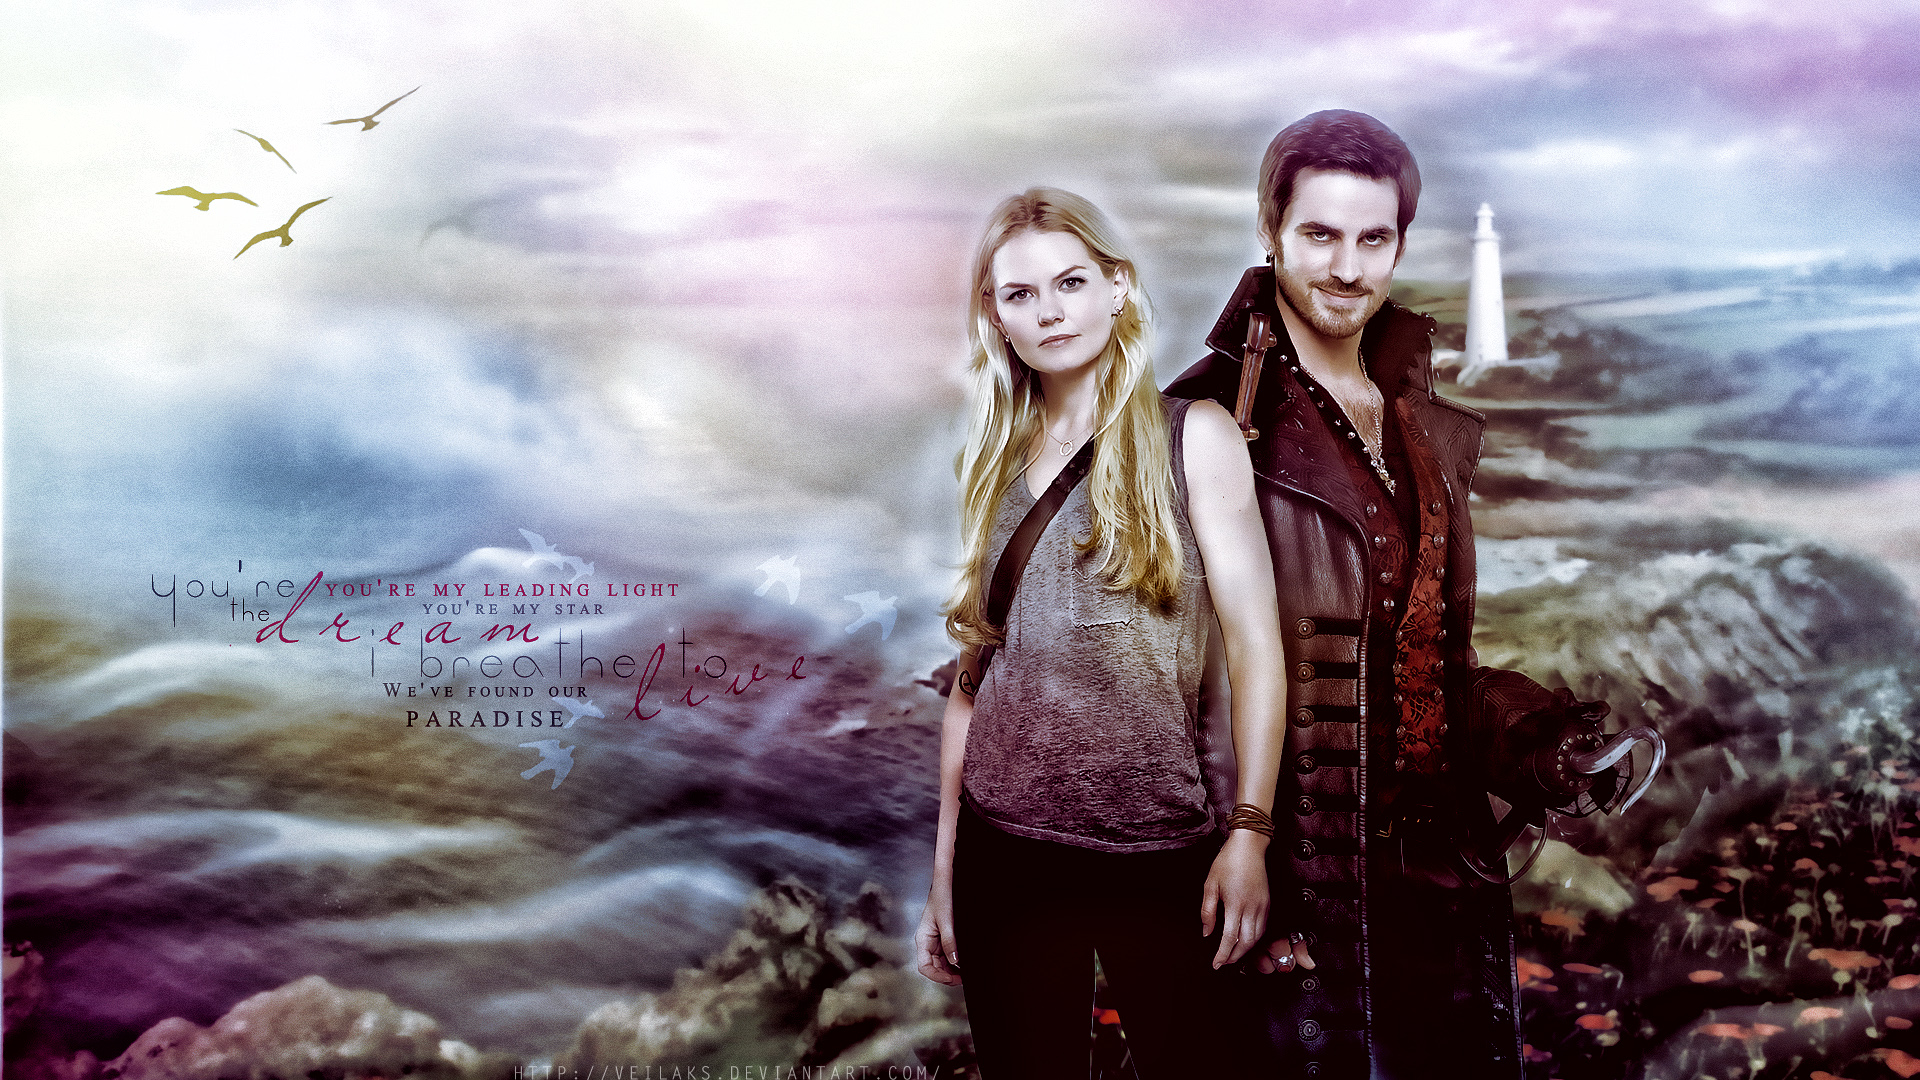 hook once upon a time wallpaper 1920x1080 delena & captain swan images captain swan ♥ hd wallpaper and background photos download 1920x1080 killian & emma | hook found me [3x12] download 2001x3000 colin o'donoghue -killian jones - captain hook - jennifer morrison - emma swan on once upon a time | captain swan.